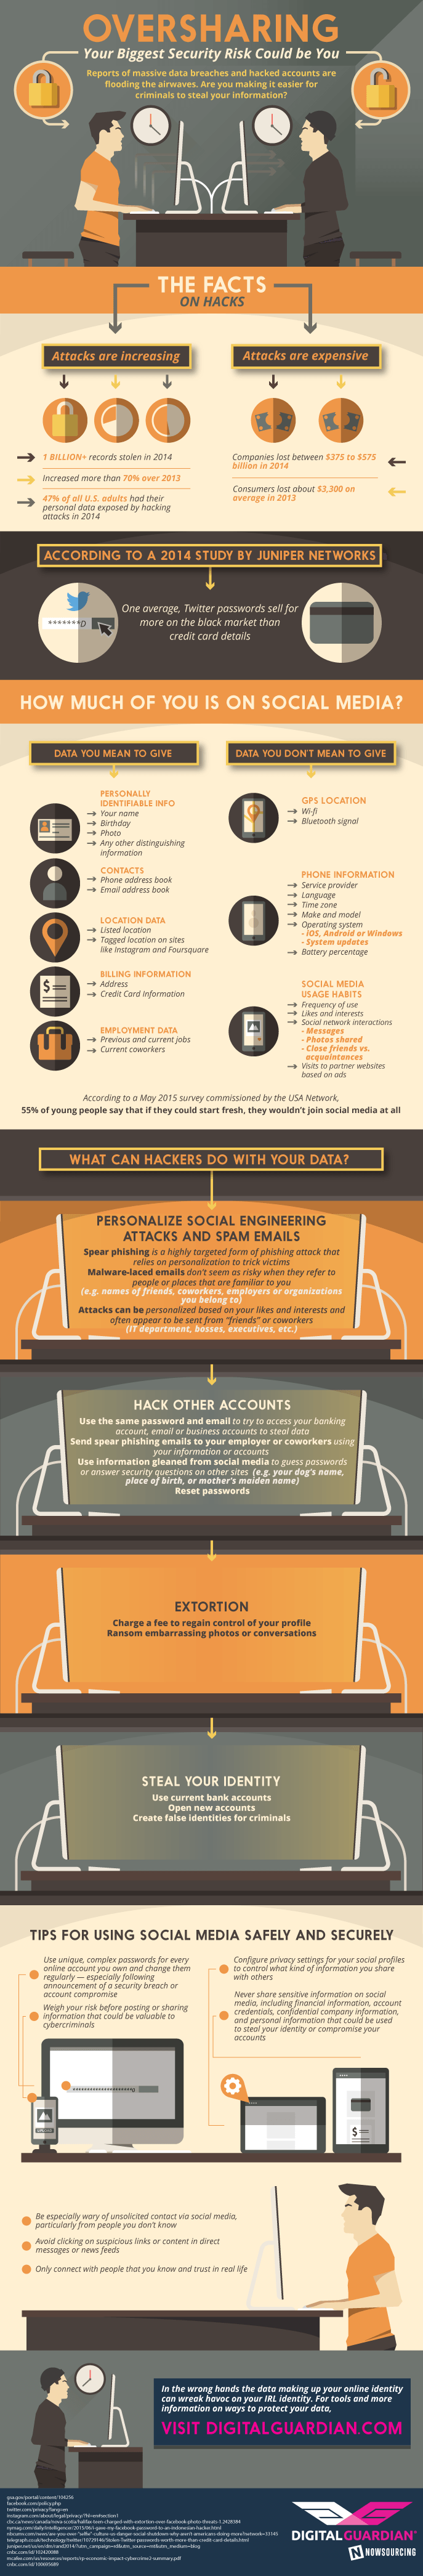 social-media-oversharing-security-risks-infographic